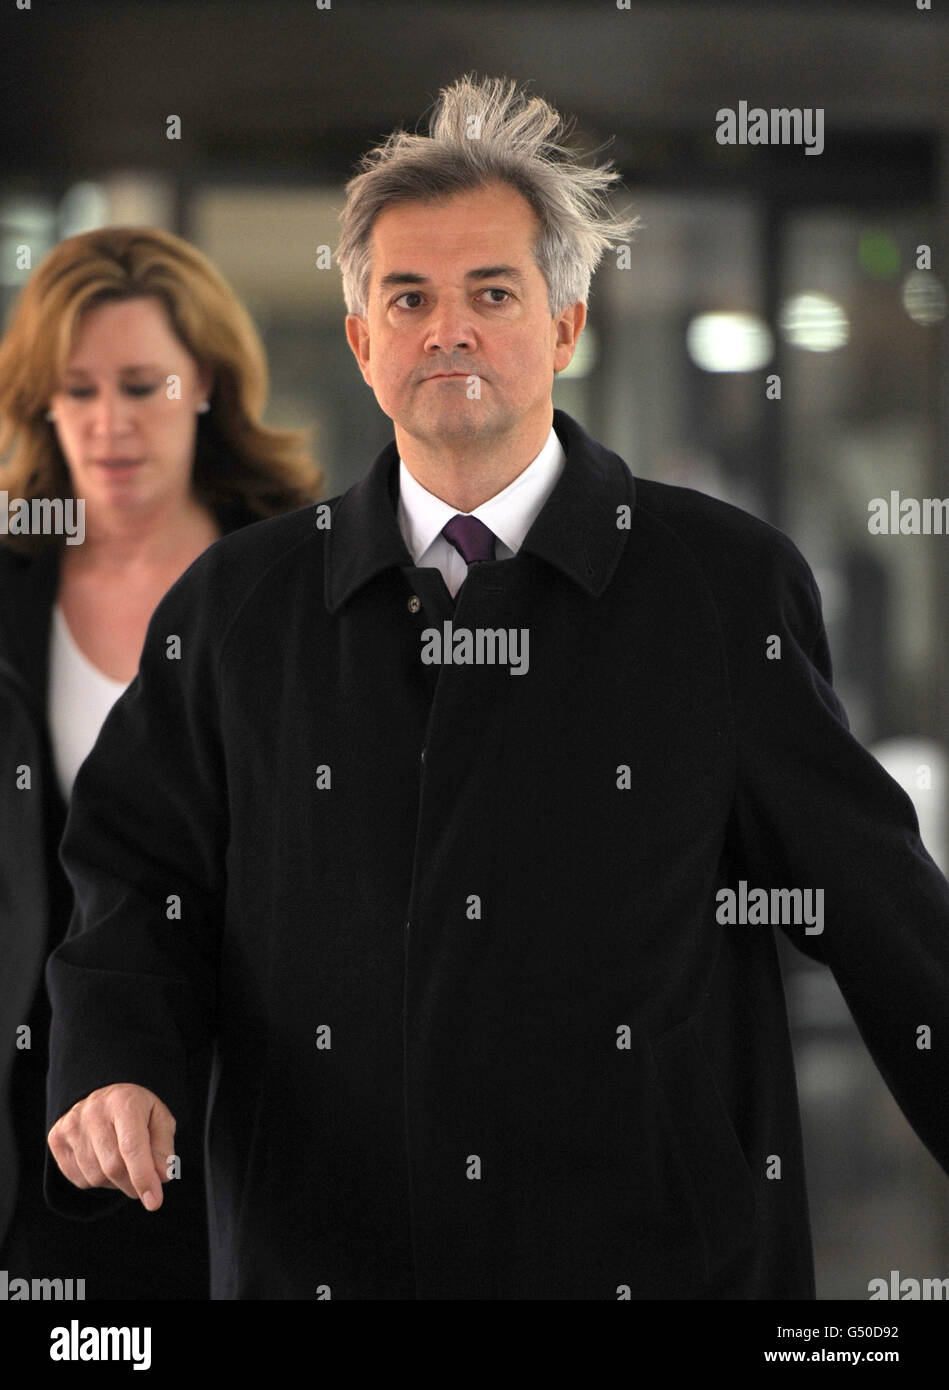 Huhne allegations - Stock Image